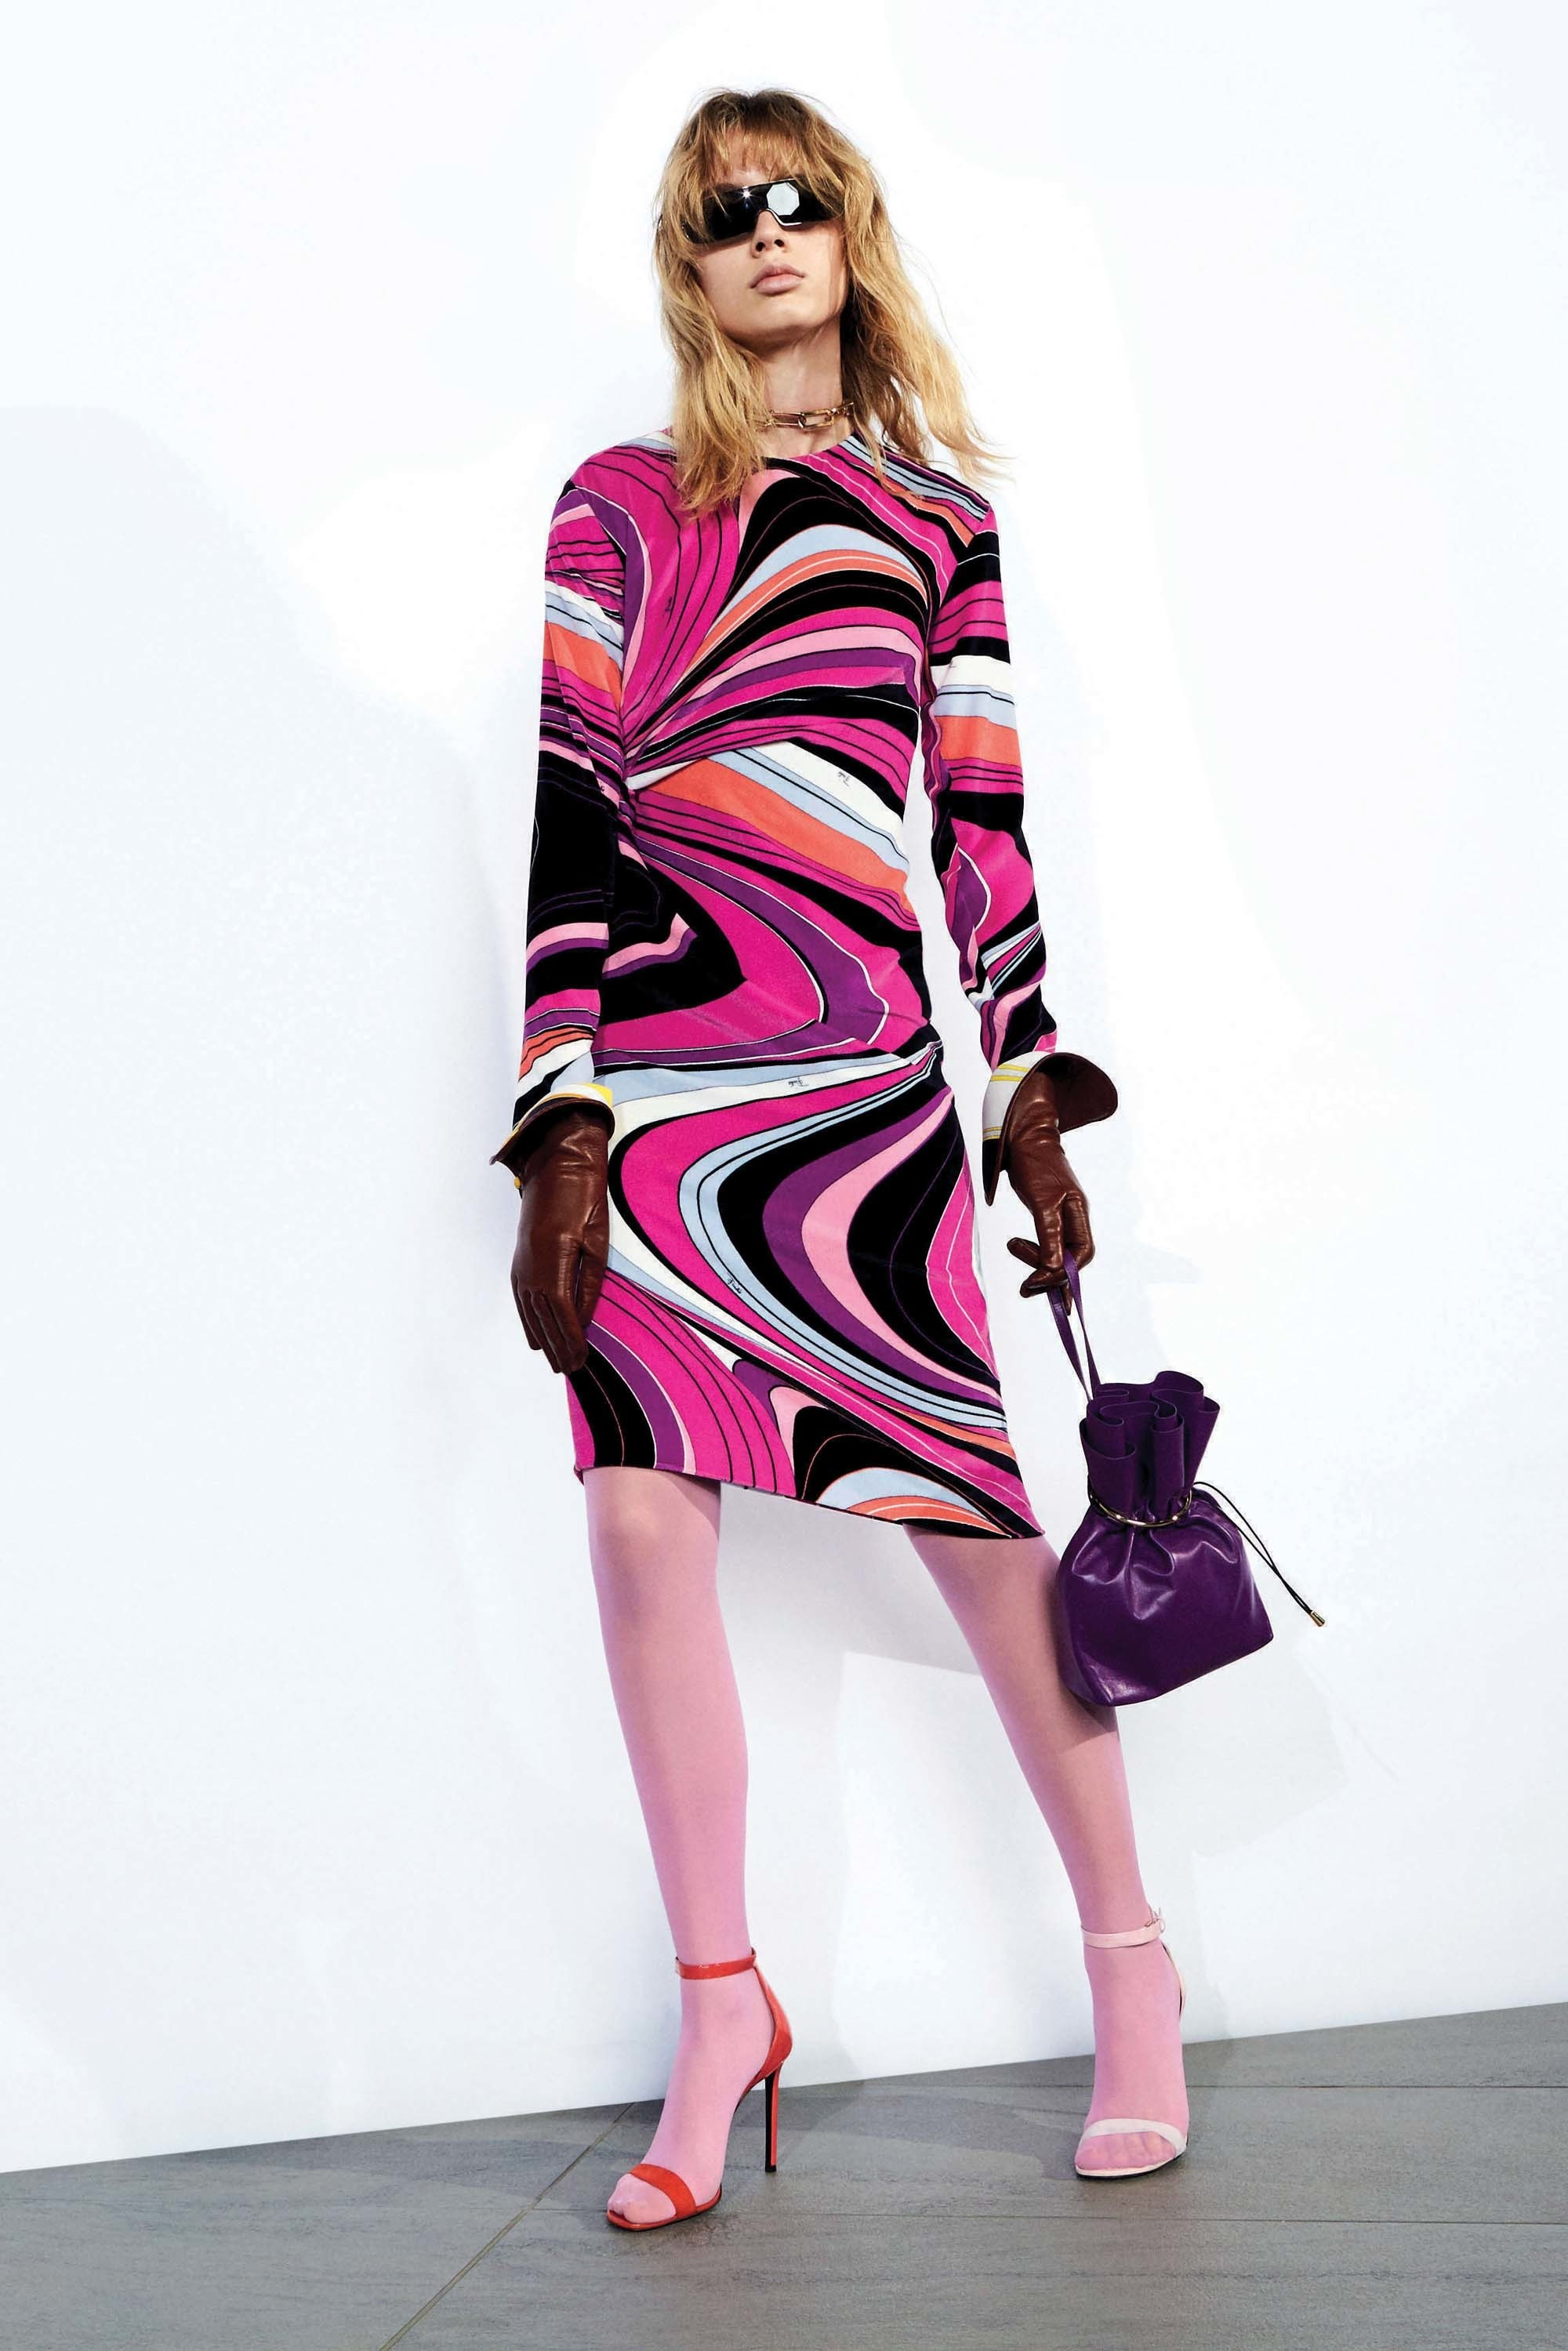 images/cast/20172000010000090=Pre Fall 2017 COLOUR'S COMPANY fabrics x=Pucci